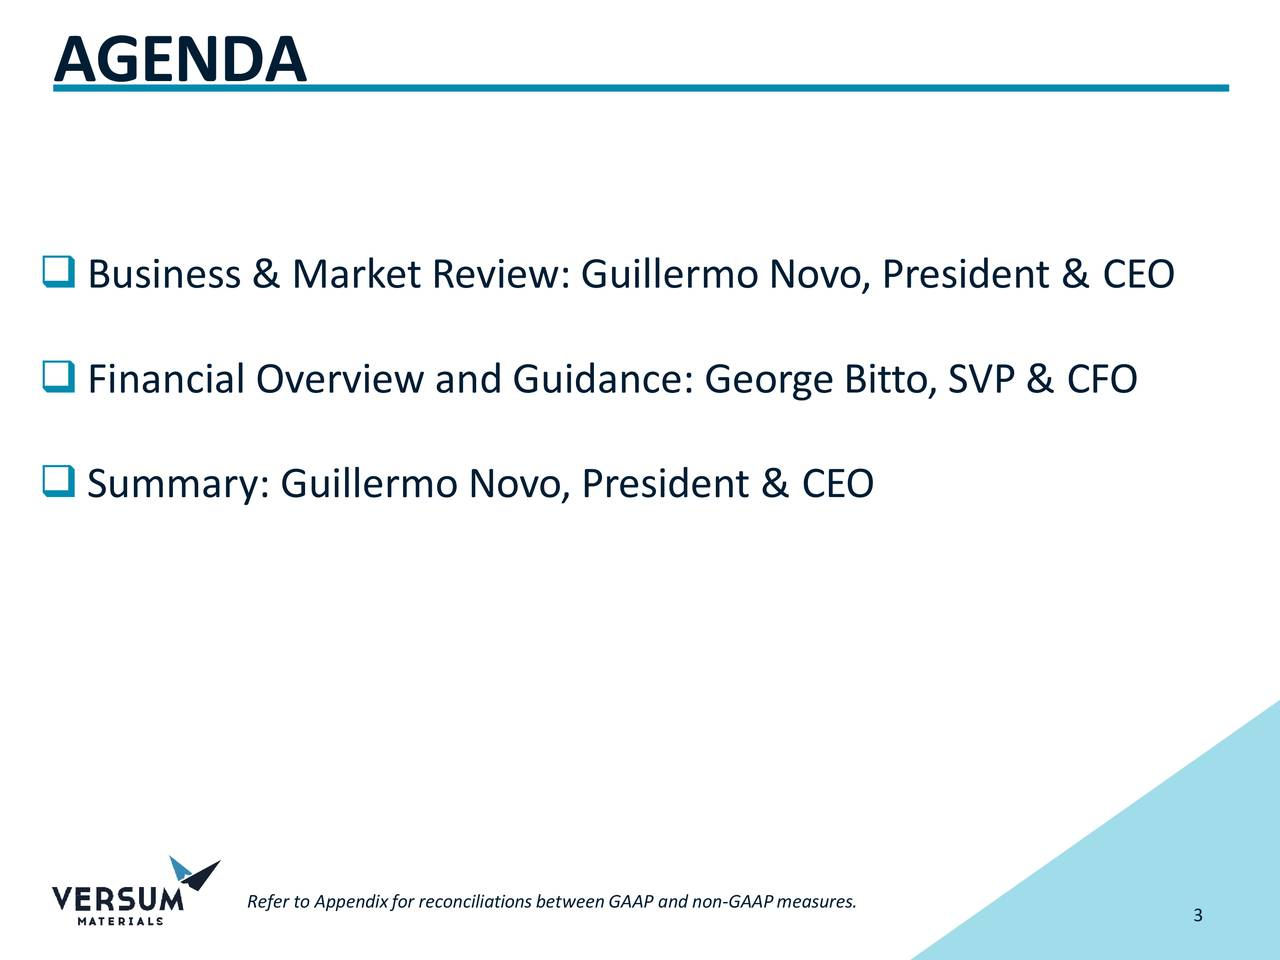 Business & Market Review: Guillermo Novo, President & CEO Financial Overview and Guidance: George Bitto, SVP & CFO Summary: Guillermo Novo, President & CEO Refer to Appendixfor reconciliationsbetweenGAAP a3d non-GAAPmeasures.